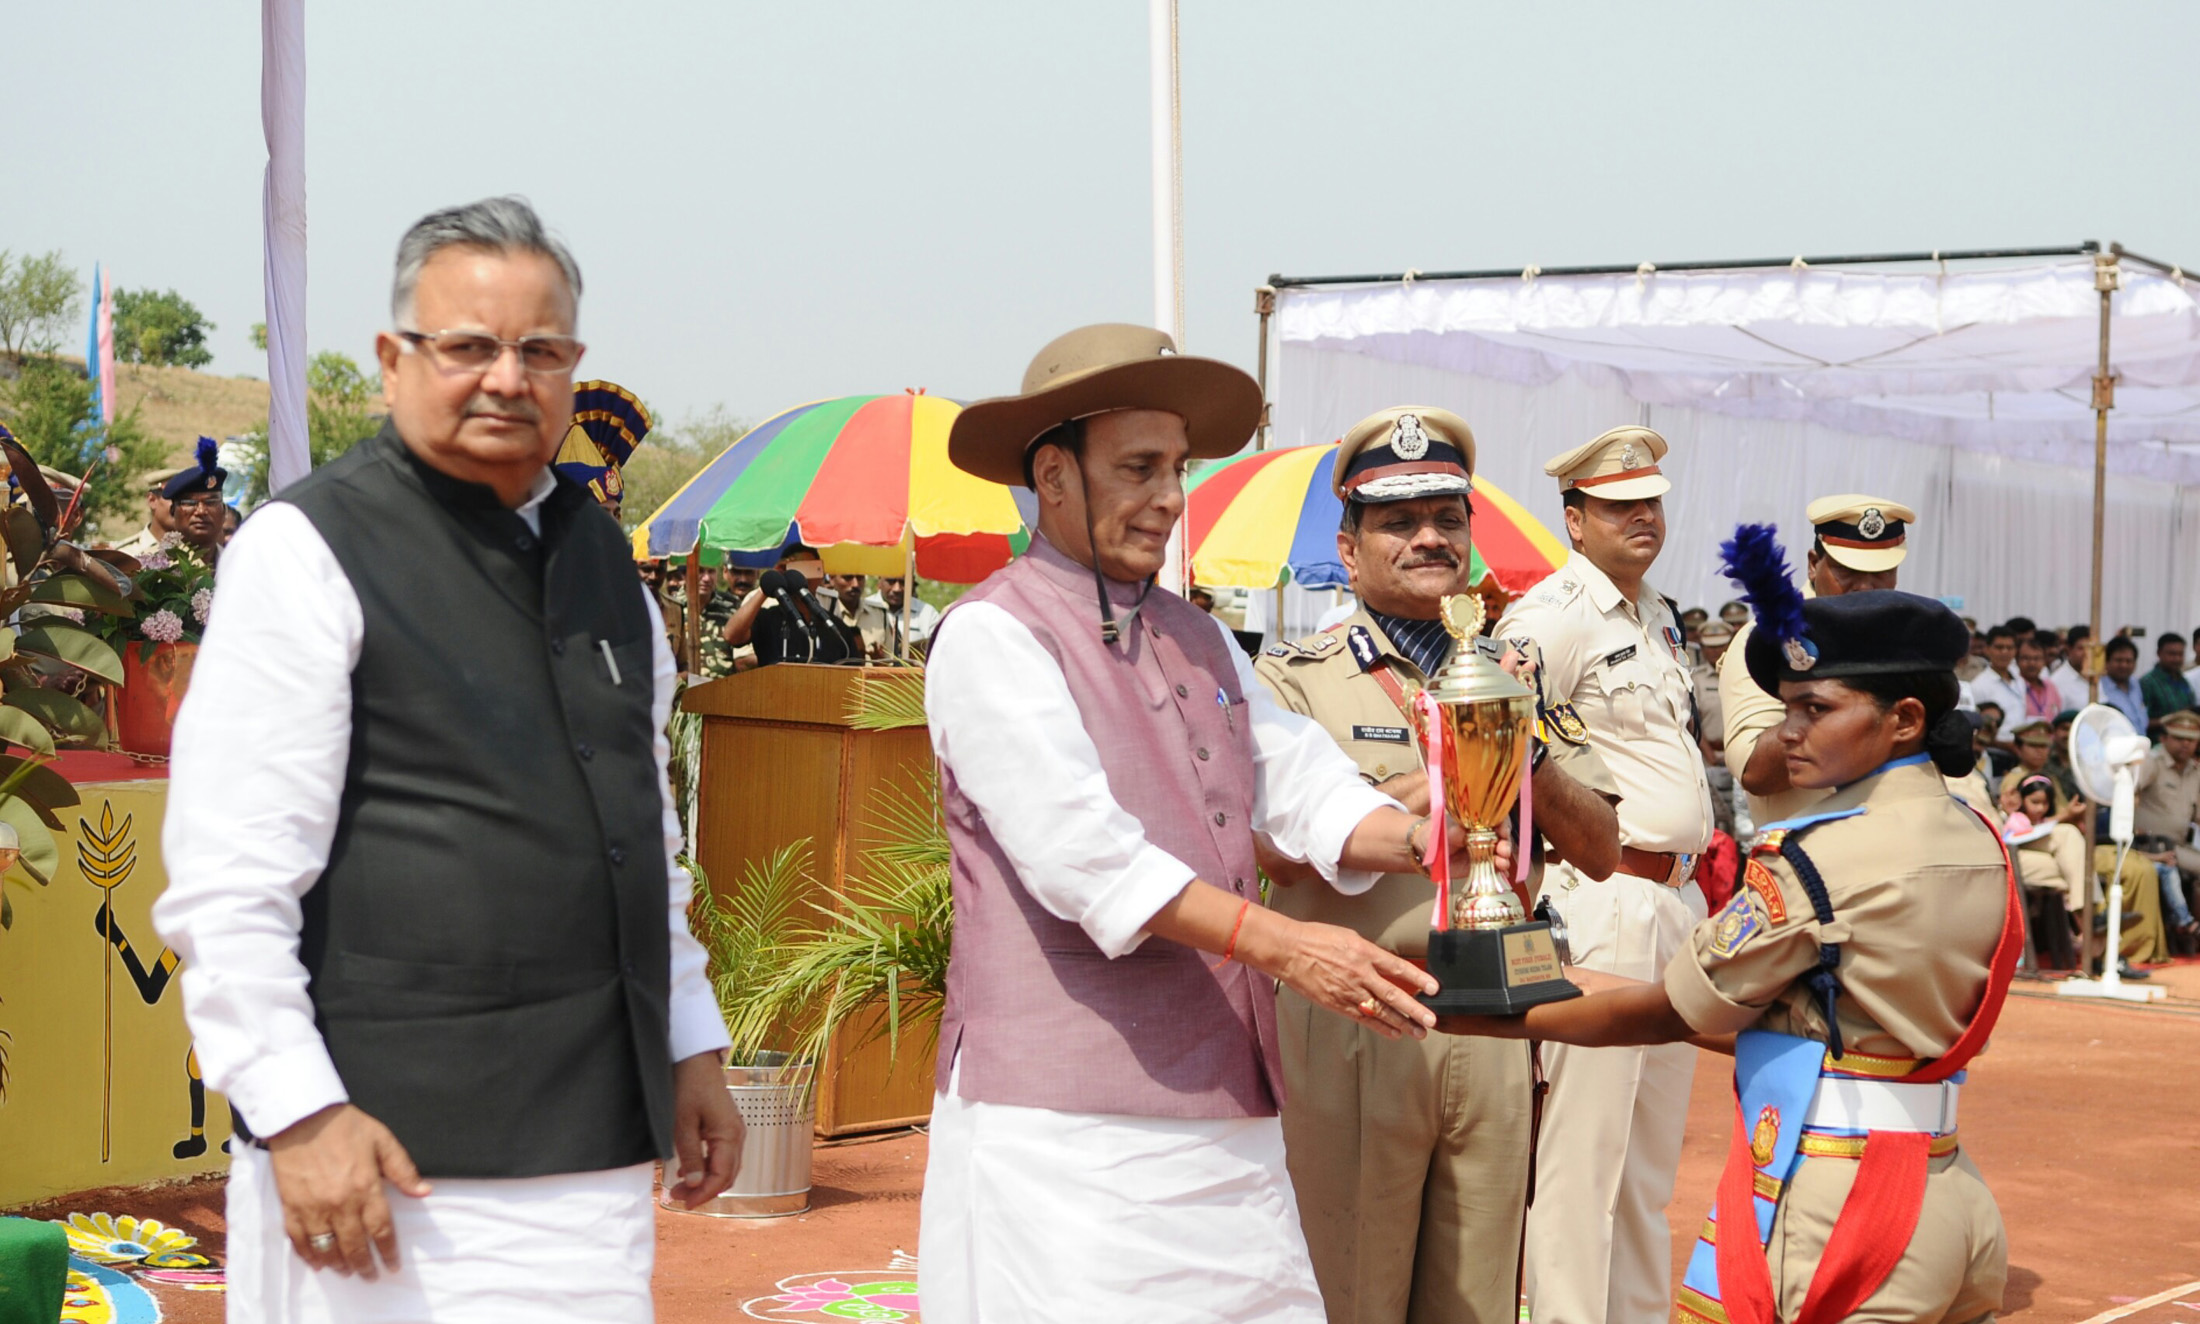 The Union Home Minister, Shri Rajnath Singh presenting trophies, during the Passing Out Parade of the 'Bastariya Battalion' of CRPF, in Ambikapur, in Chhattisgarh on May 21, 2018. 	The Chief Minister of Chhattisgarh, Dr. Raman Singh is are also see